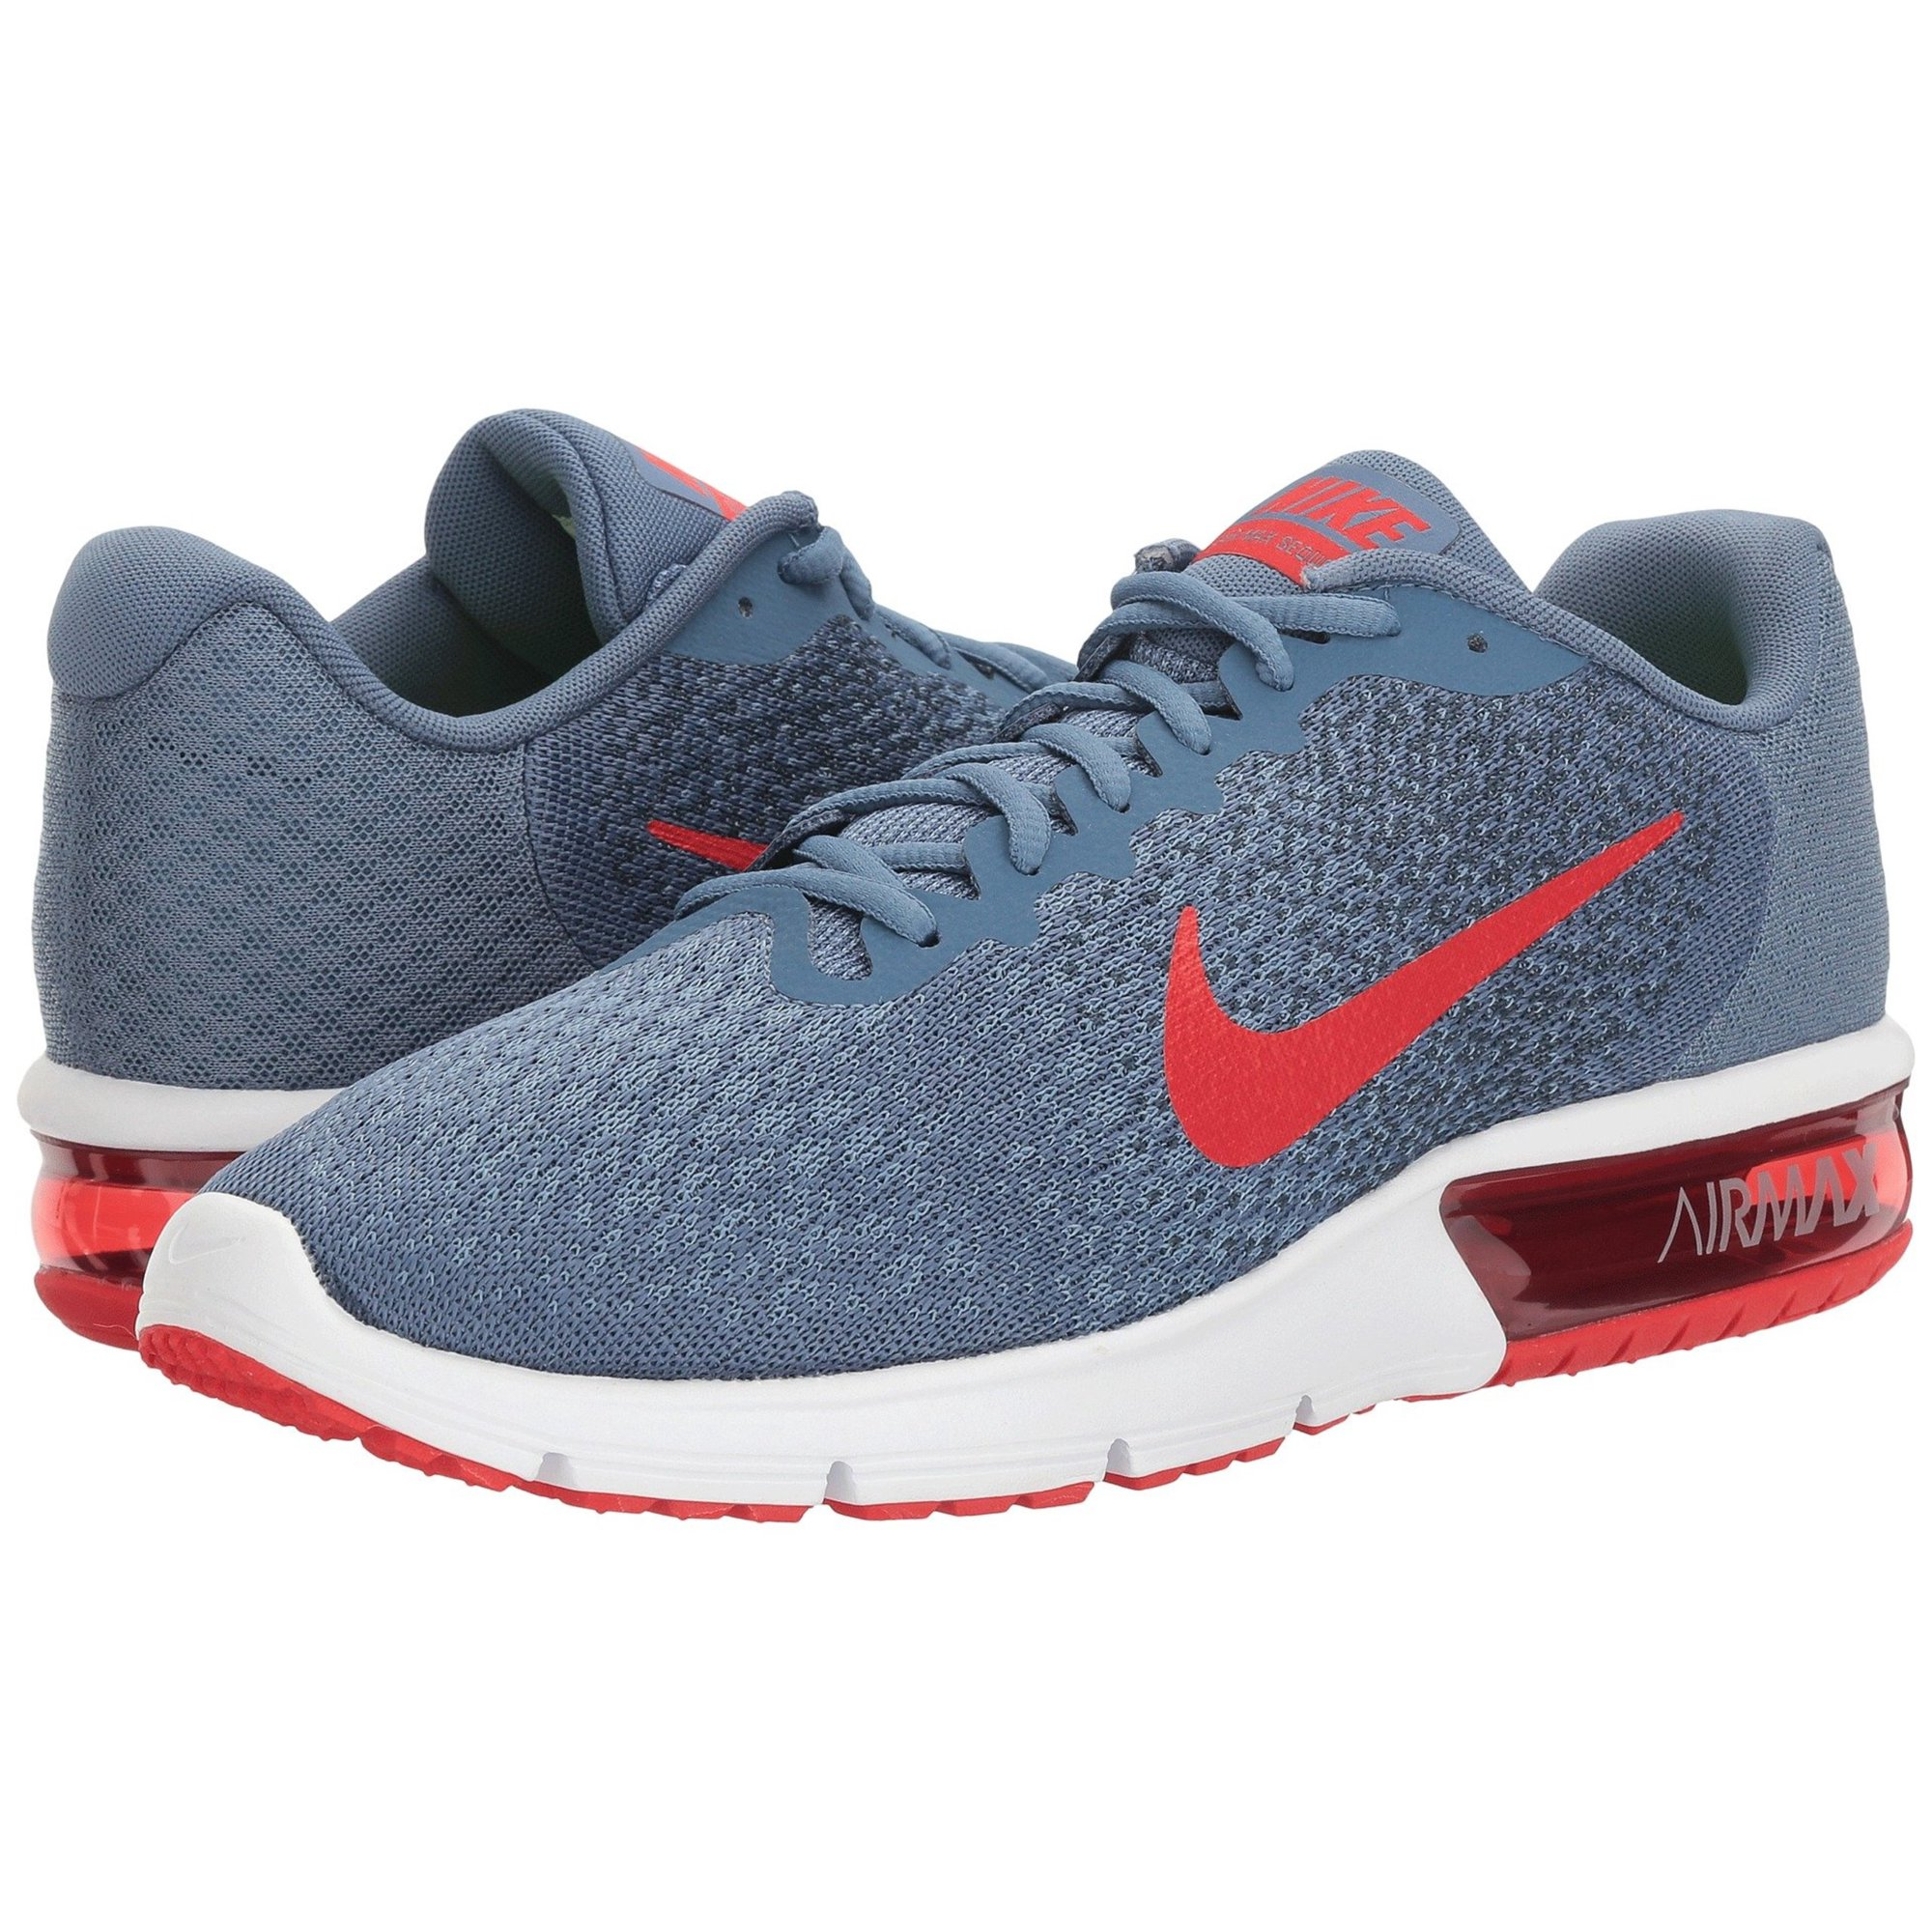 Tênis Nike Air Max Sequent 4 Way Tenis